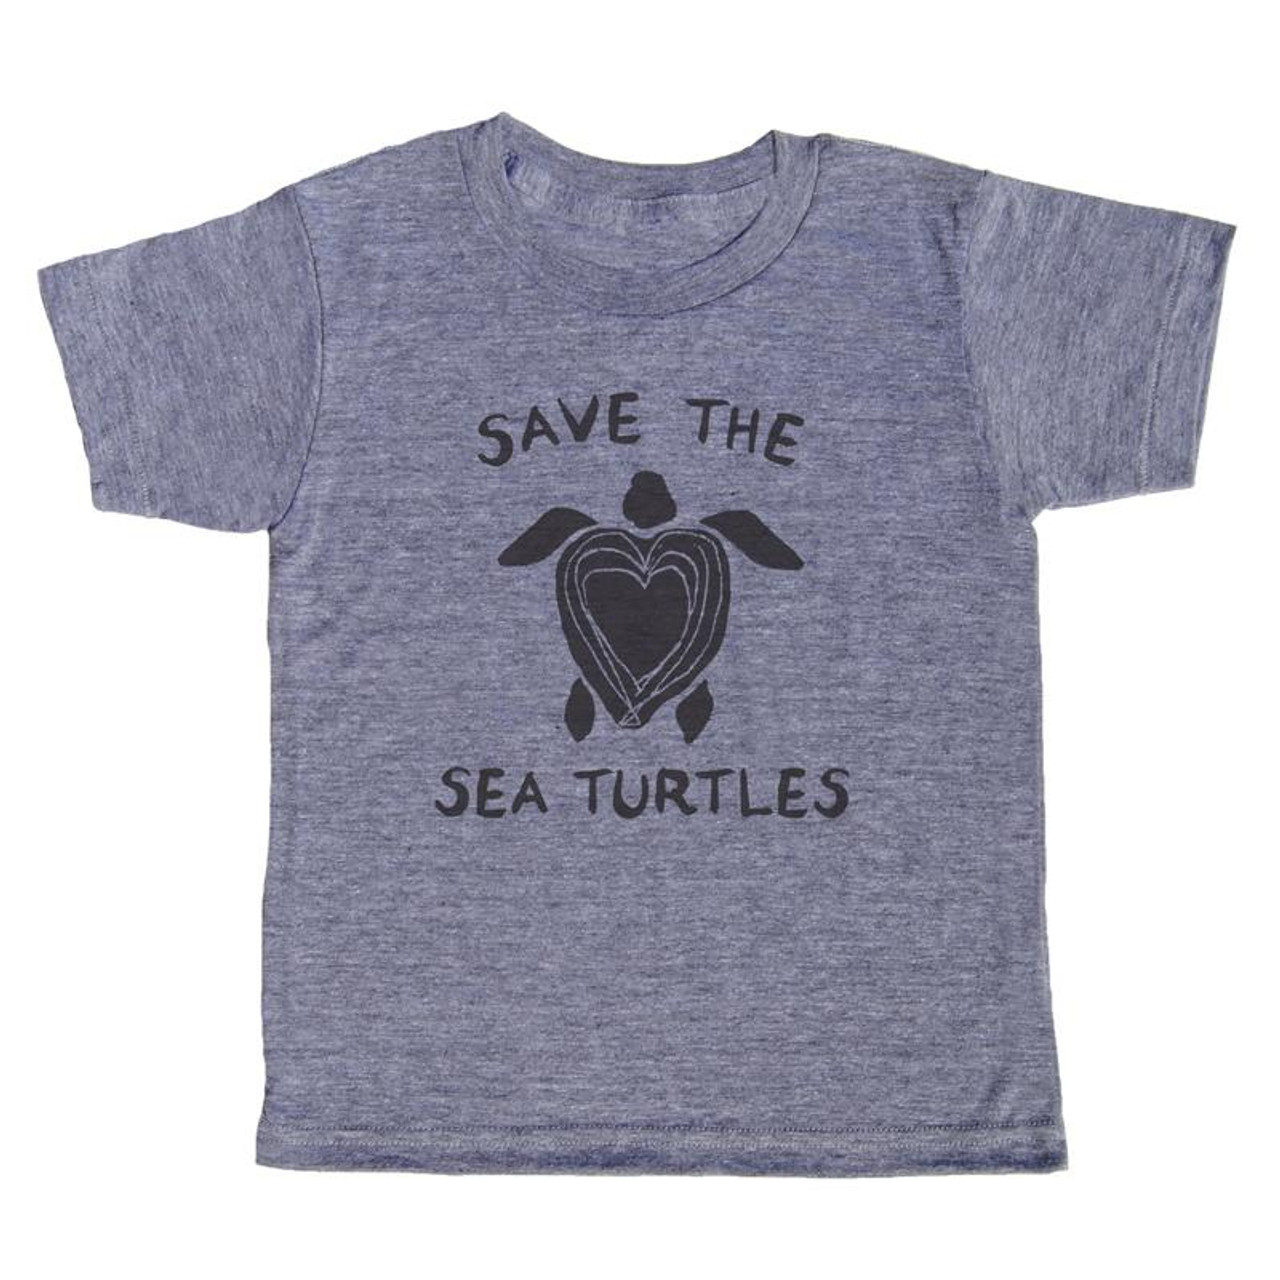 grey t-shirt with black lettering - save the sea turtles, with a sea turtle in the middle and the shell is shaped like a  heart